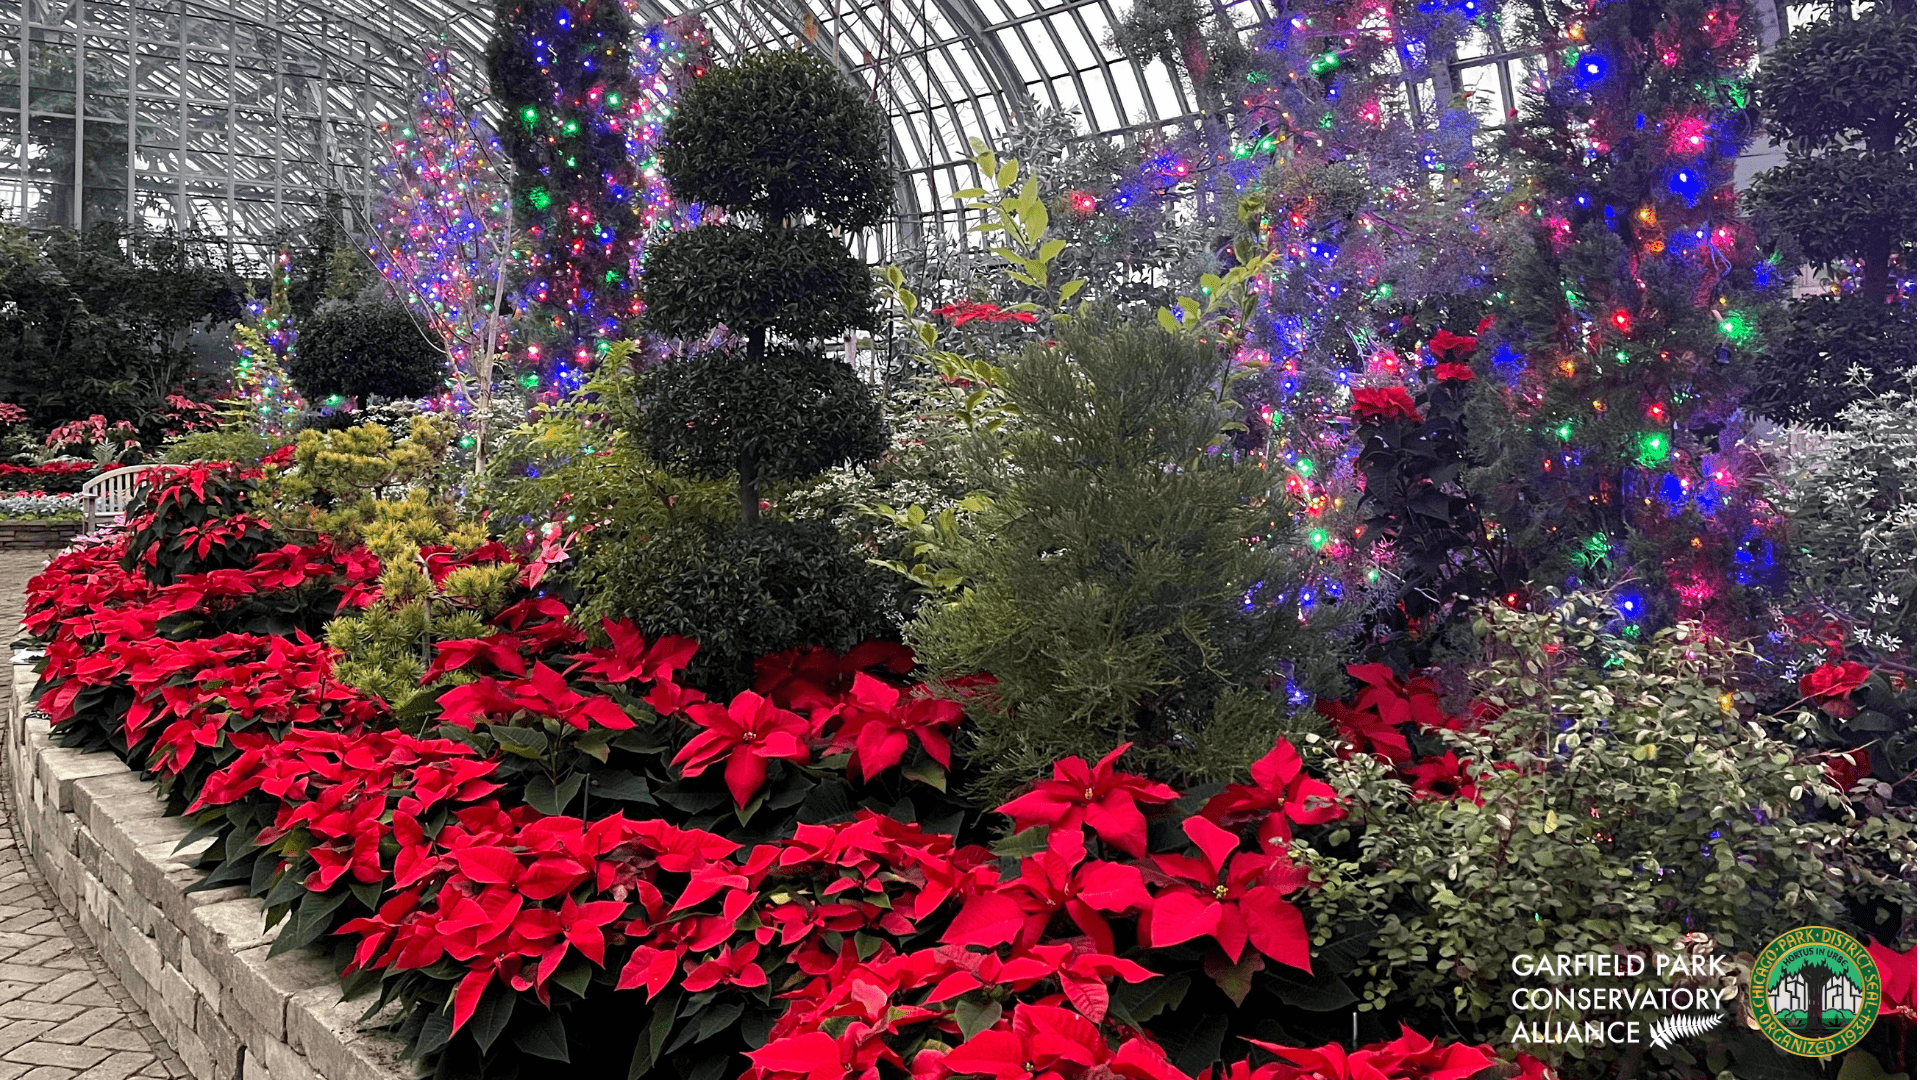 Red poinsettias in the Conservator's Show House with a backdrop of green plants, some with purple and colored lights.